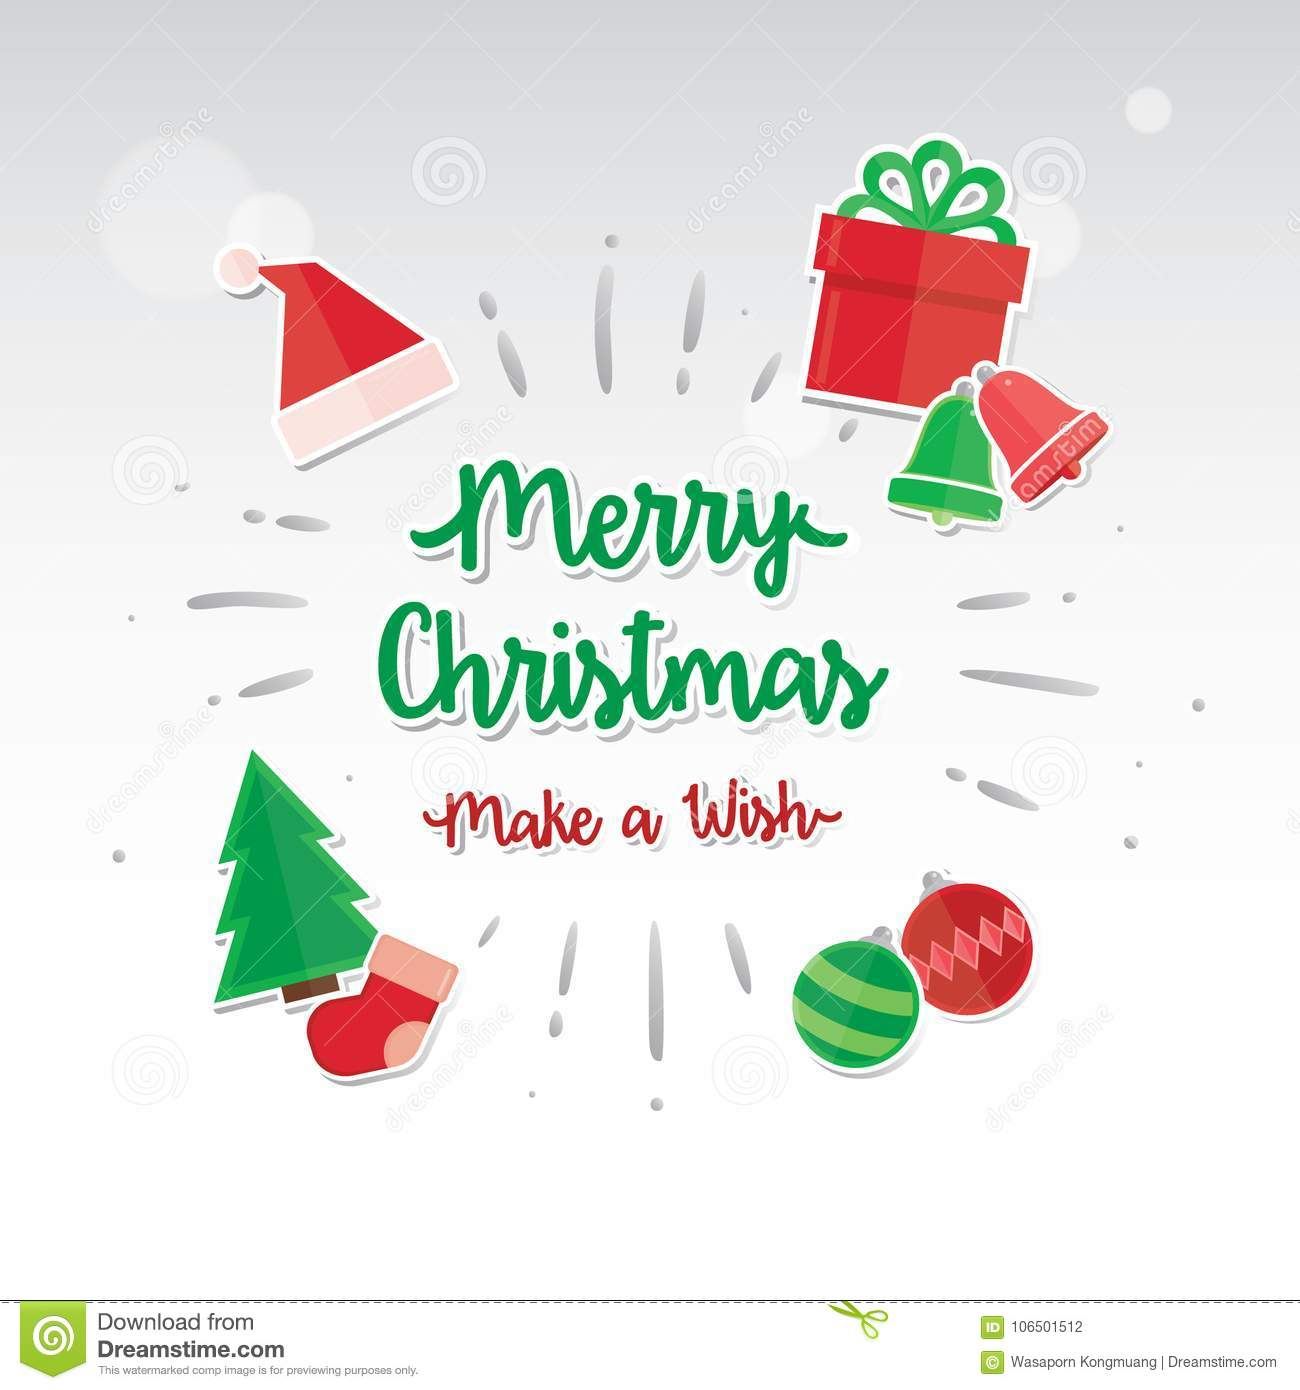 merry christmas card design greeting christmas card template on